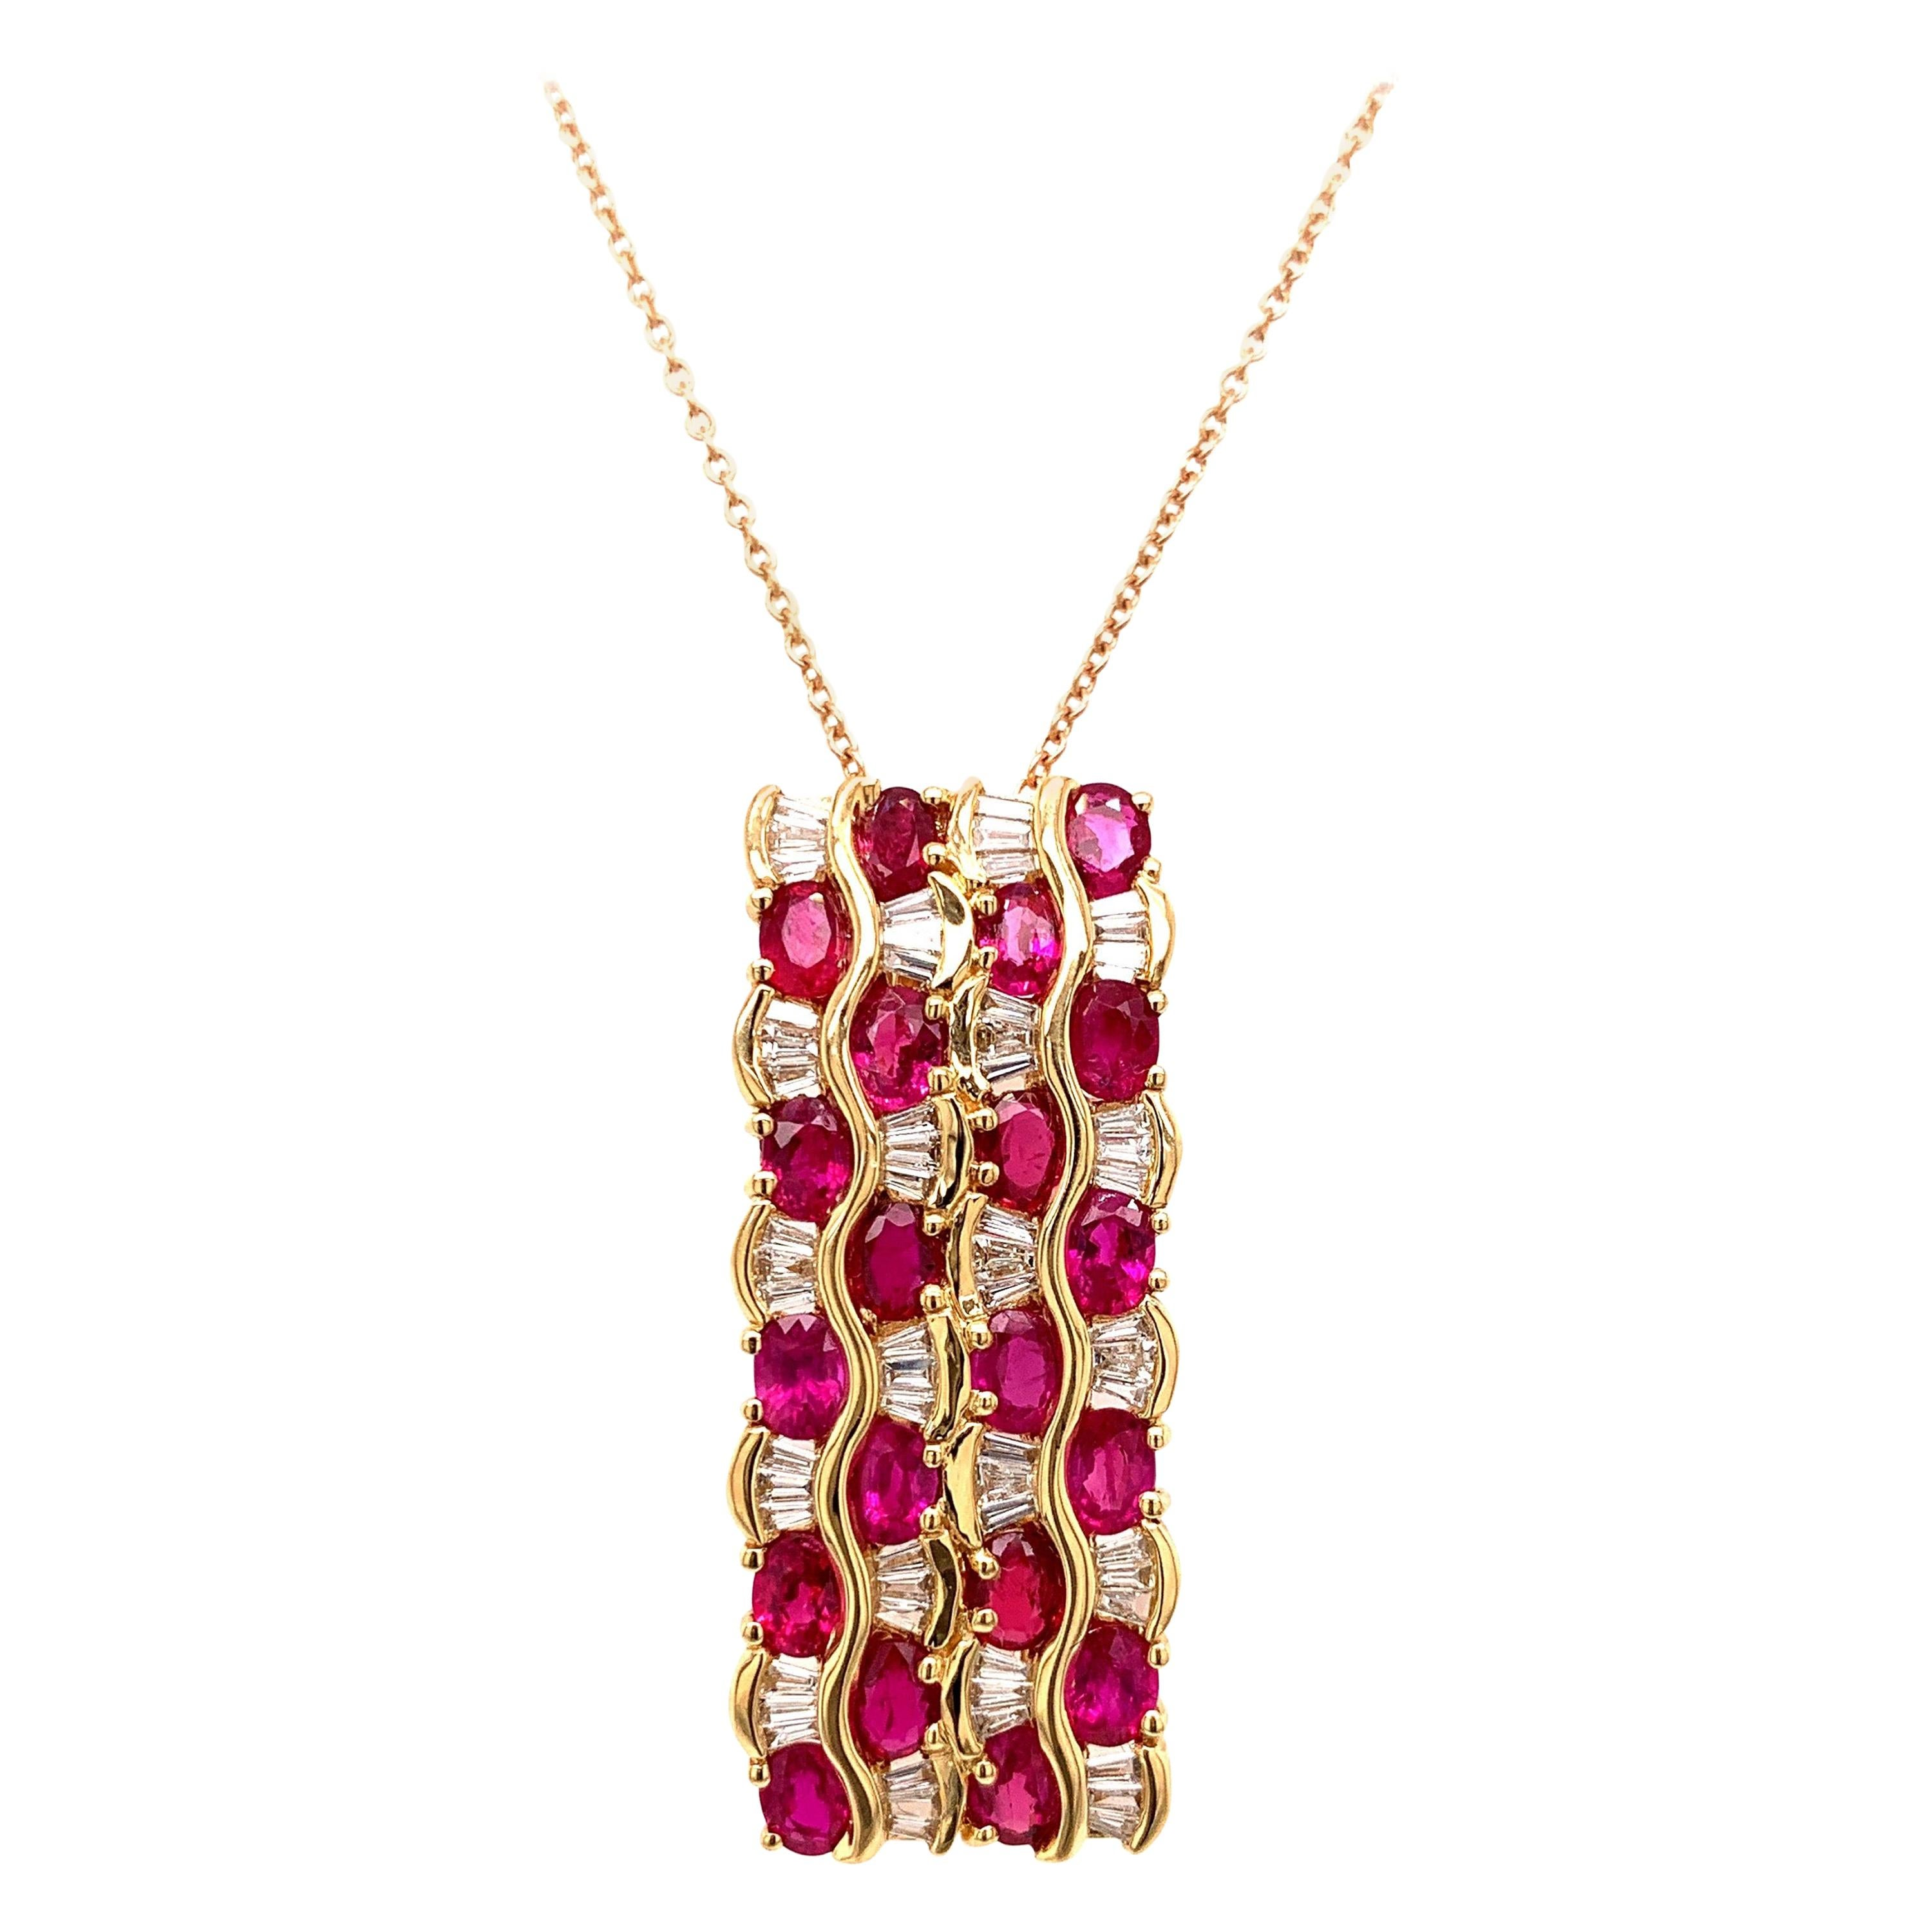 4.52 Carat Ruby Diamond Pendant